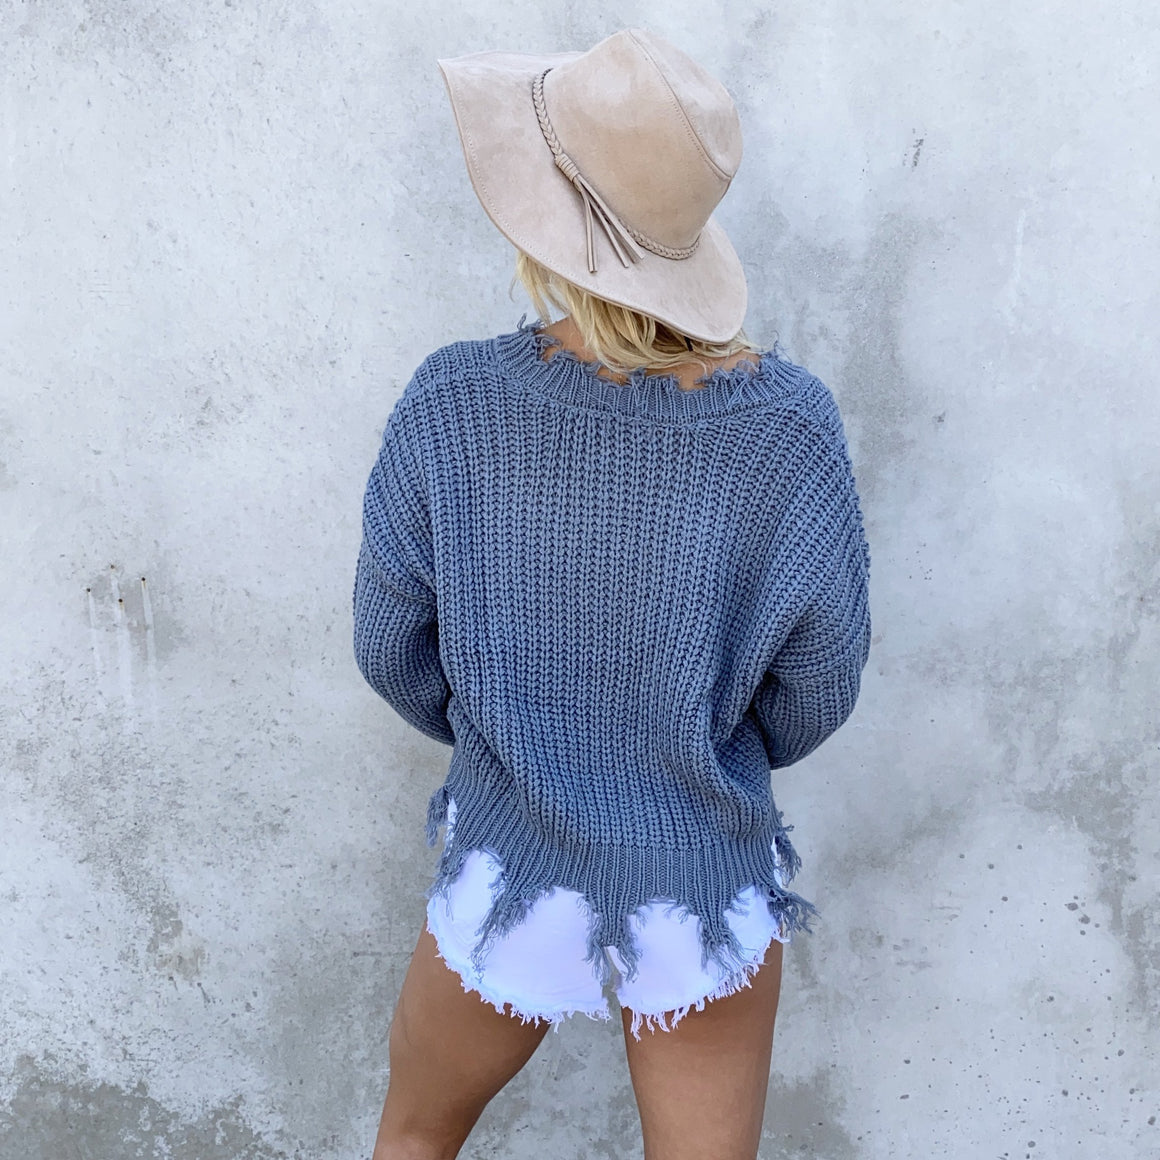 Jagged Edge Knit Sweater In Teal Blue - Dainty Hooligan